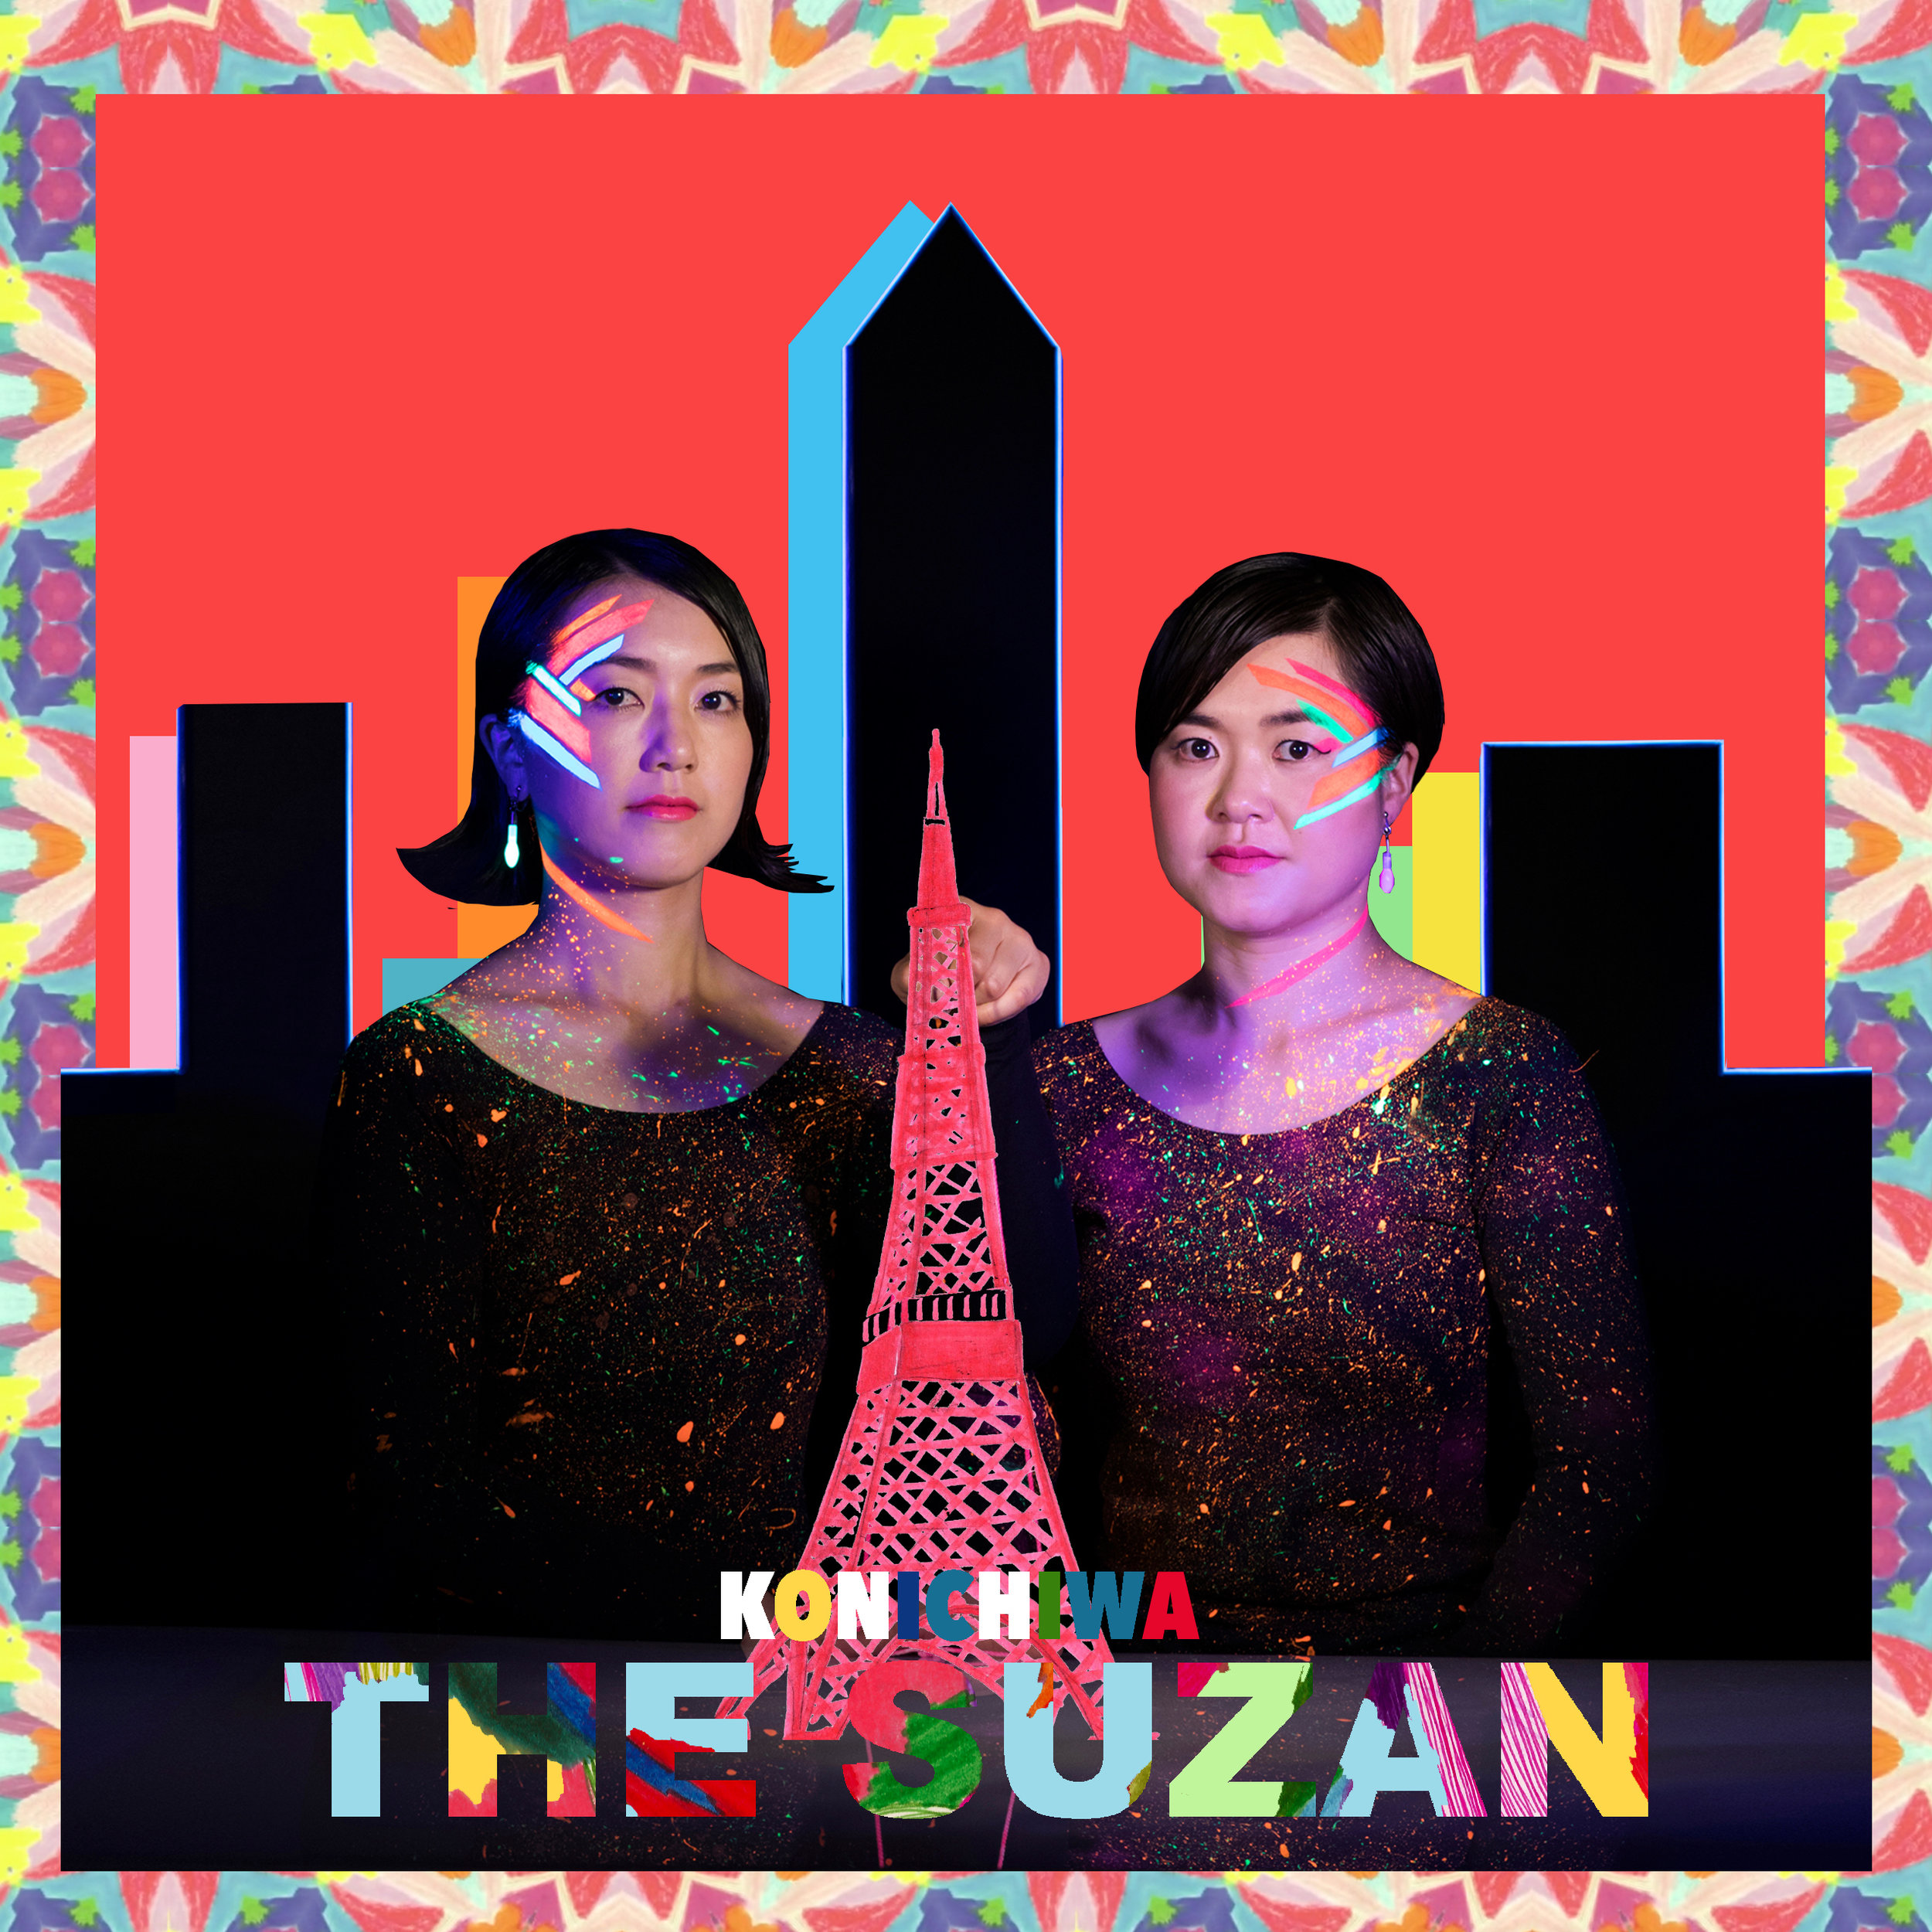 The Suzan - Konichiwa EP